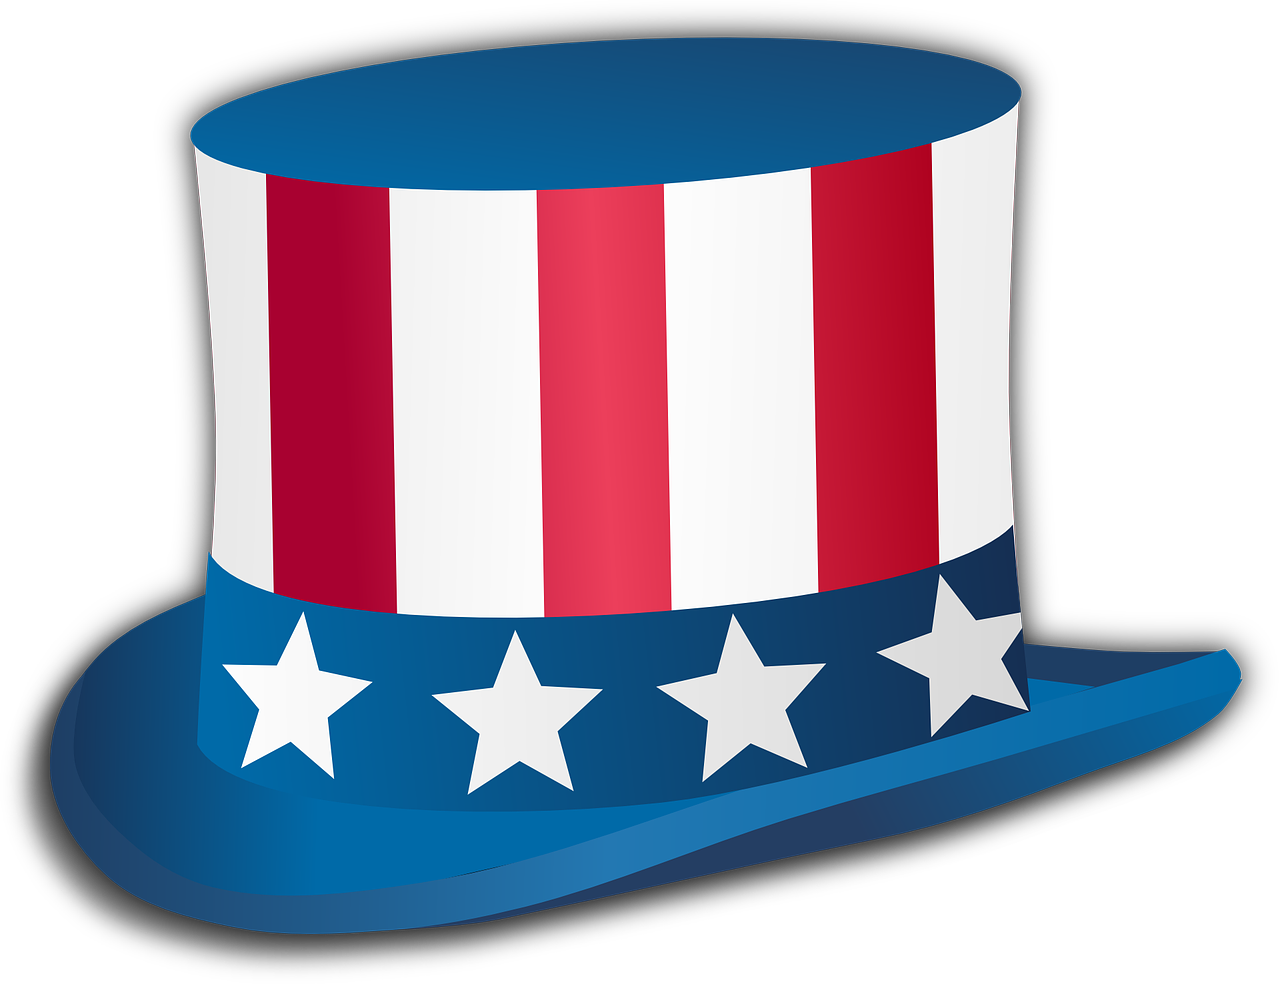 Clipart bow 4th july. Patriotic uncle sam dog